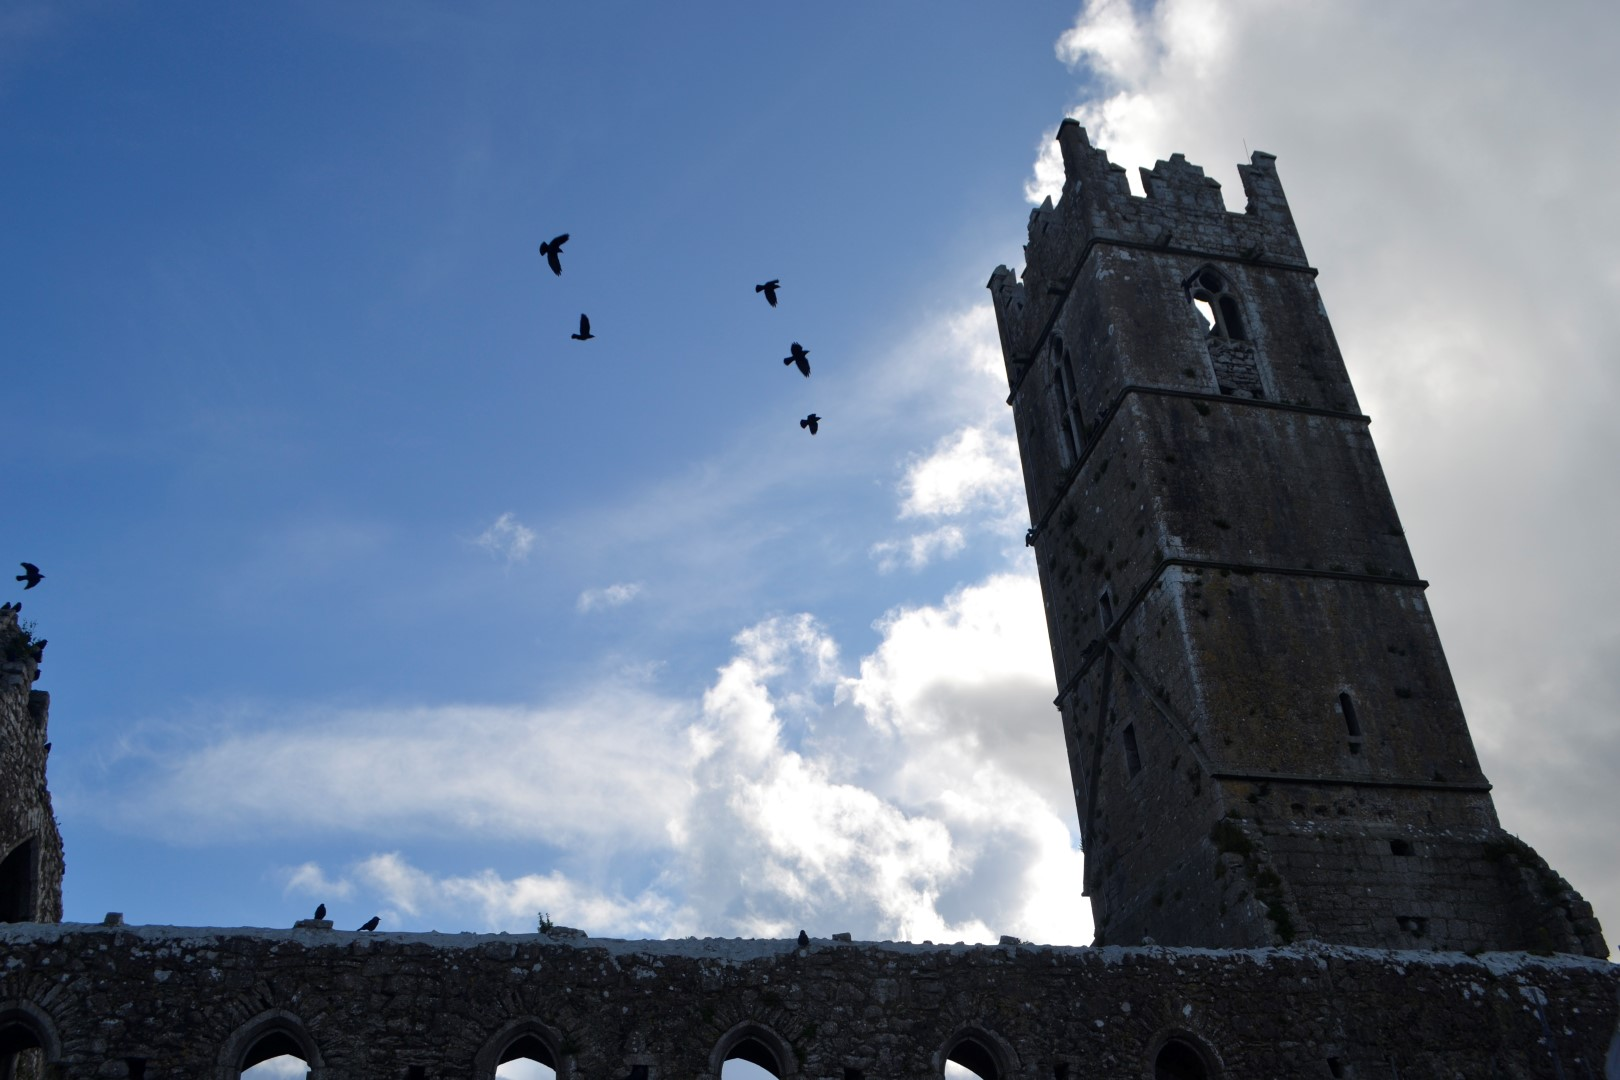 Clare Galway Fransciscan Priory, County Clare, Ireland, photo: Andy Bruner